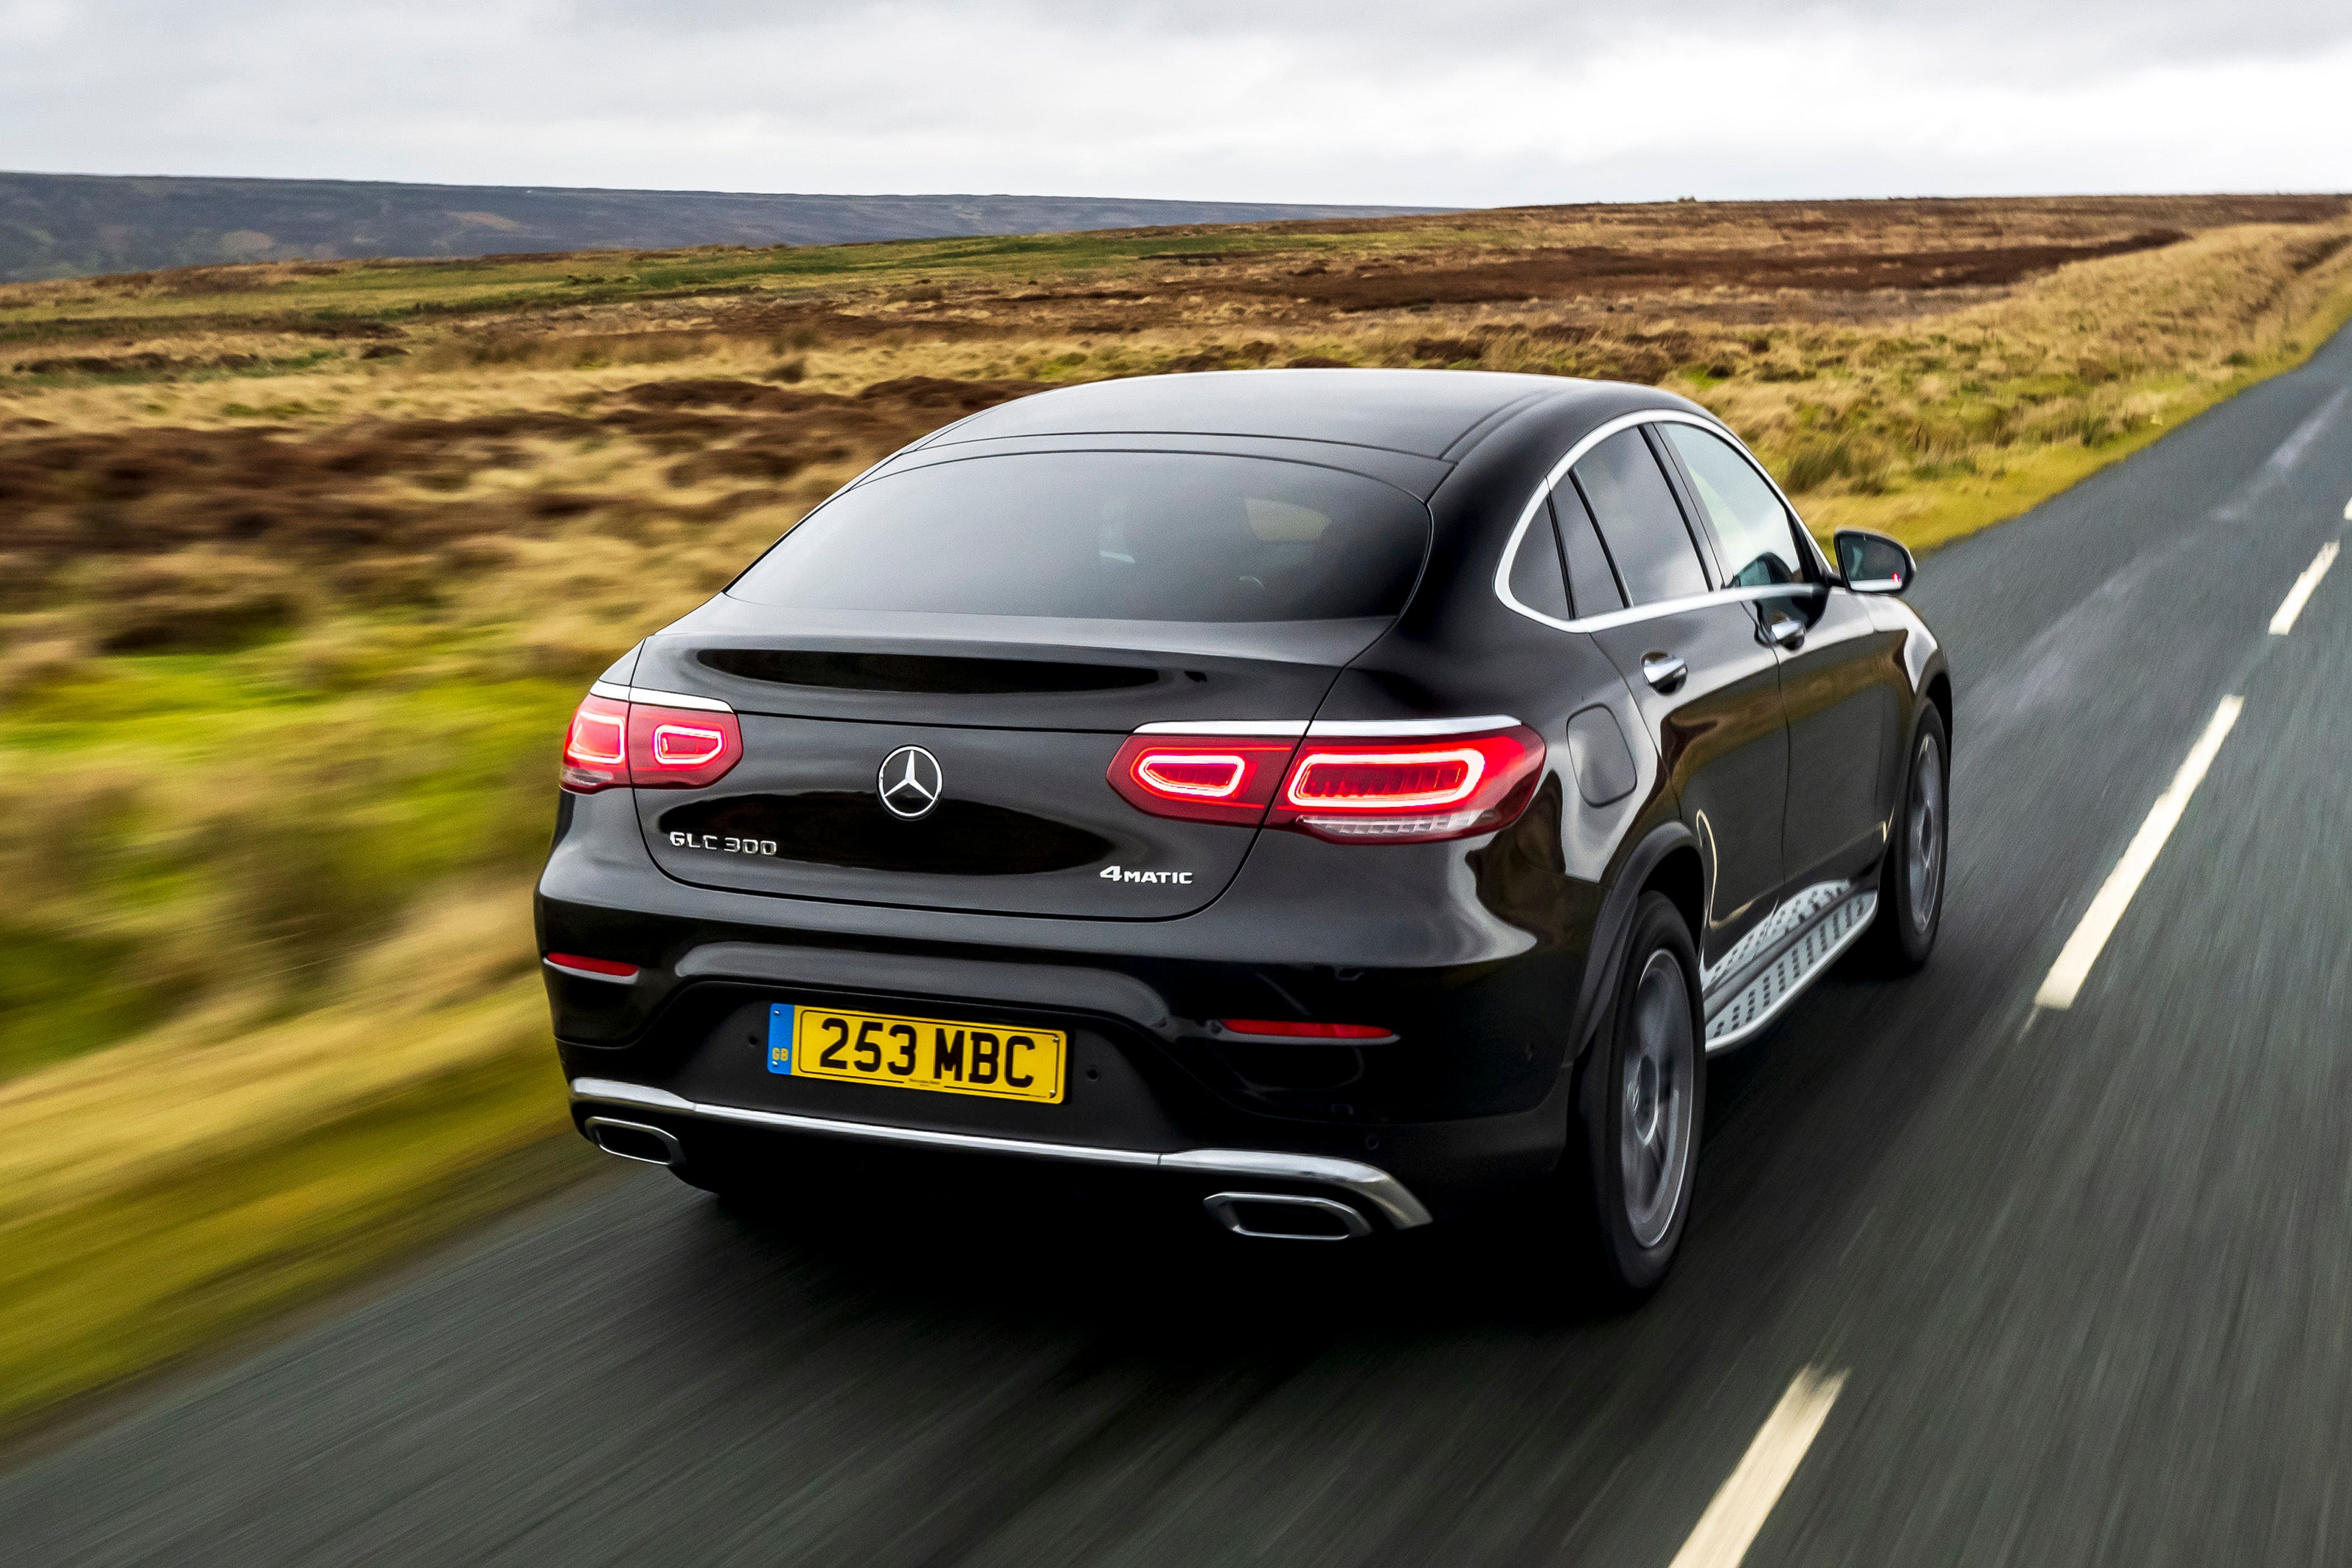 Mercedes GLC Coupe backright exterior